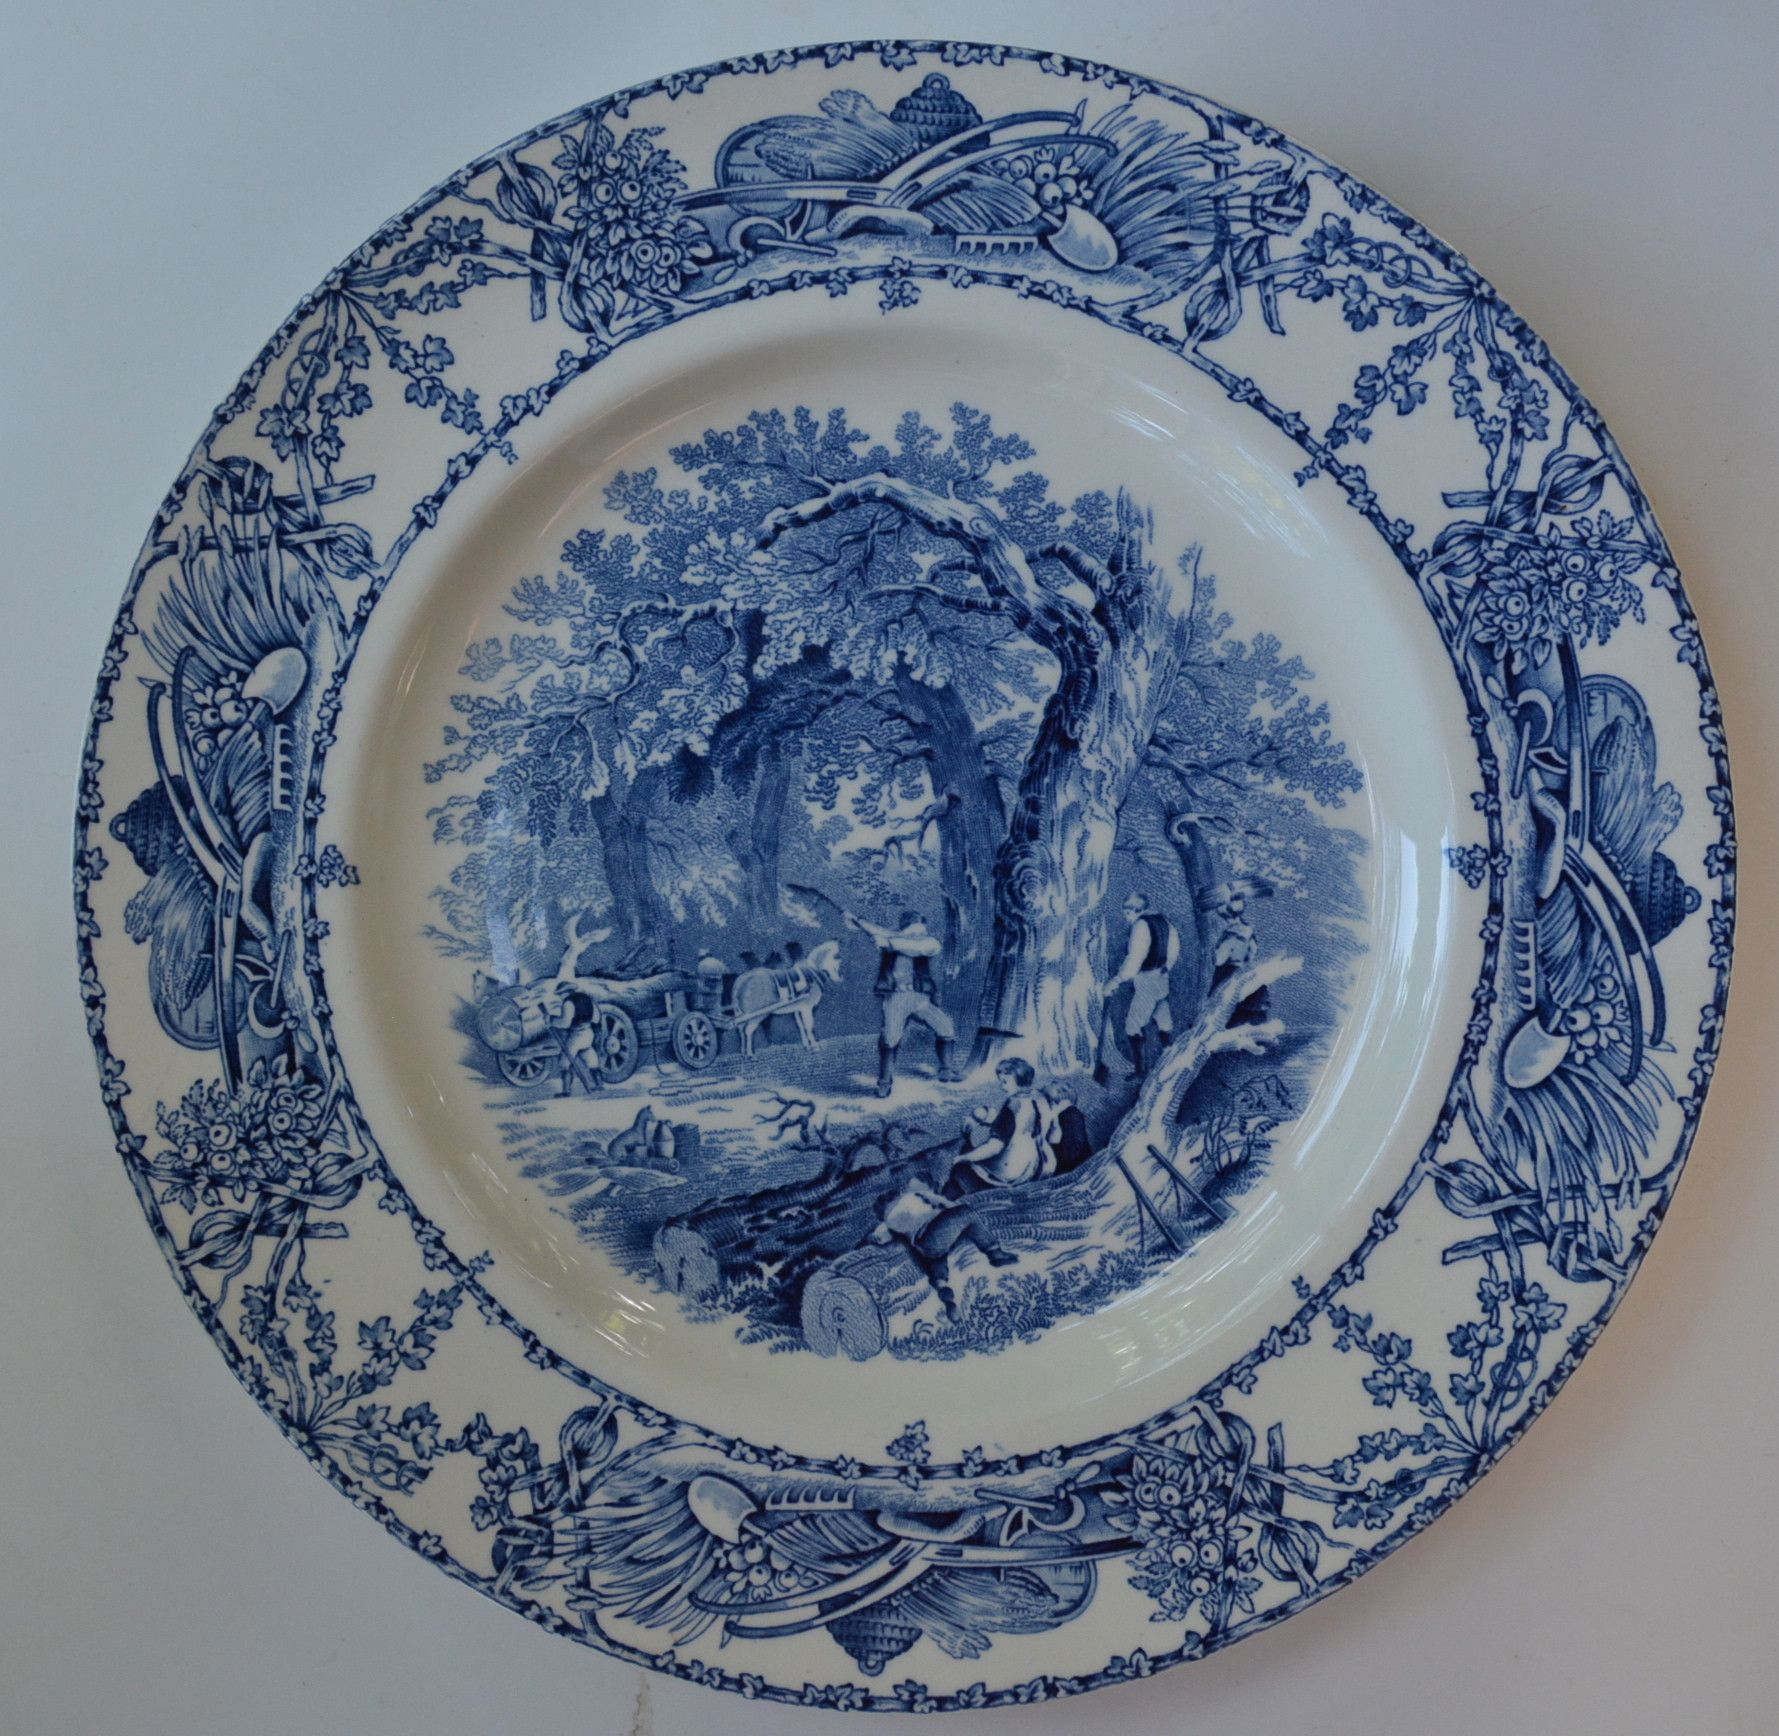 Blue Toile Rural Scenes Transferware Dinner Plate English Country Mother Children Dog Woodcutter & Blue Toile Rural Scenes Transferware Dinner Plate English Country ...